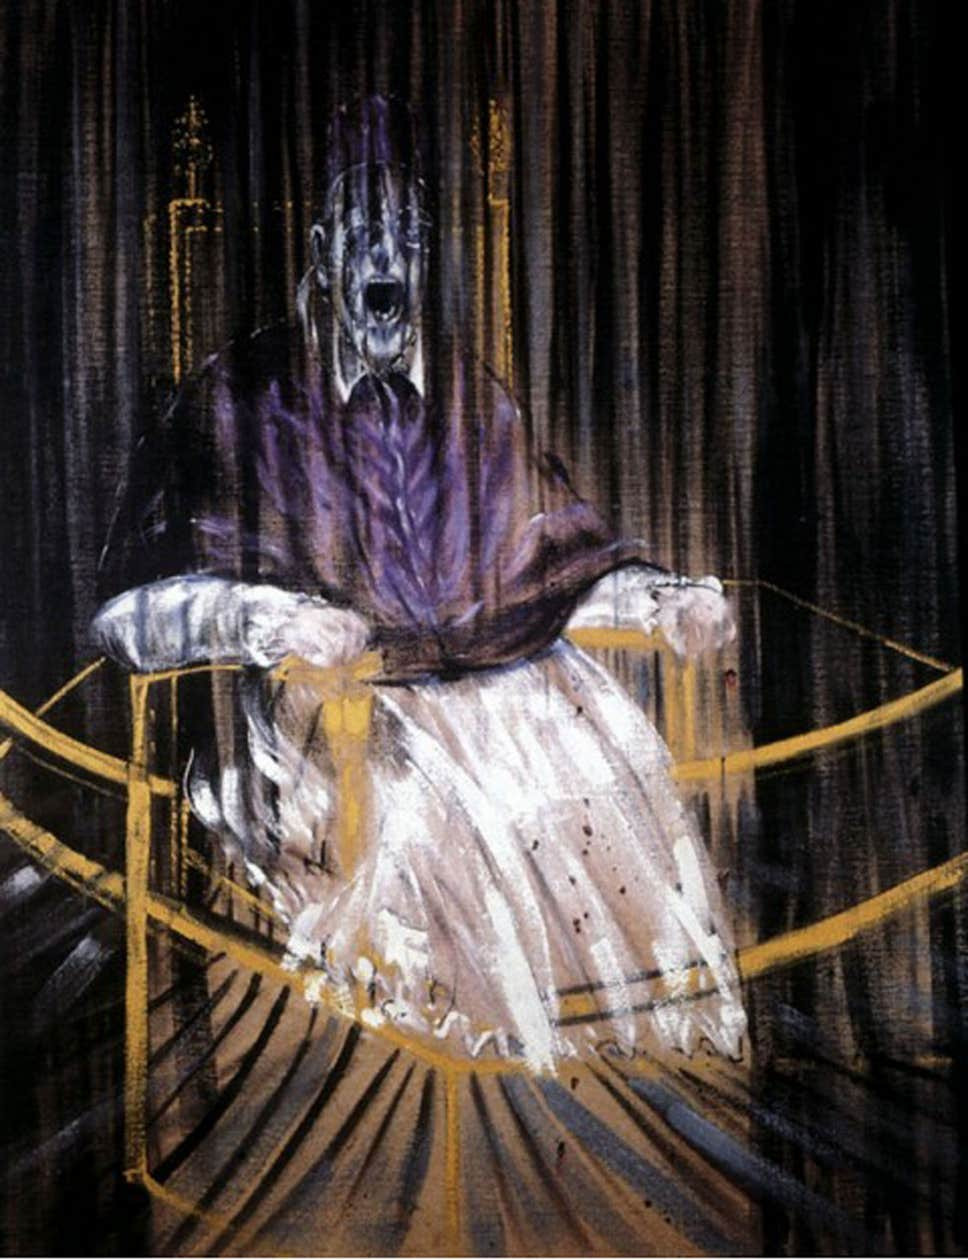 Francis Bacon's Study after Velázquez's Portrait of Pope Innocent X